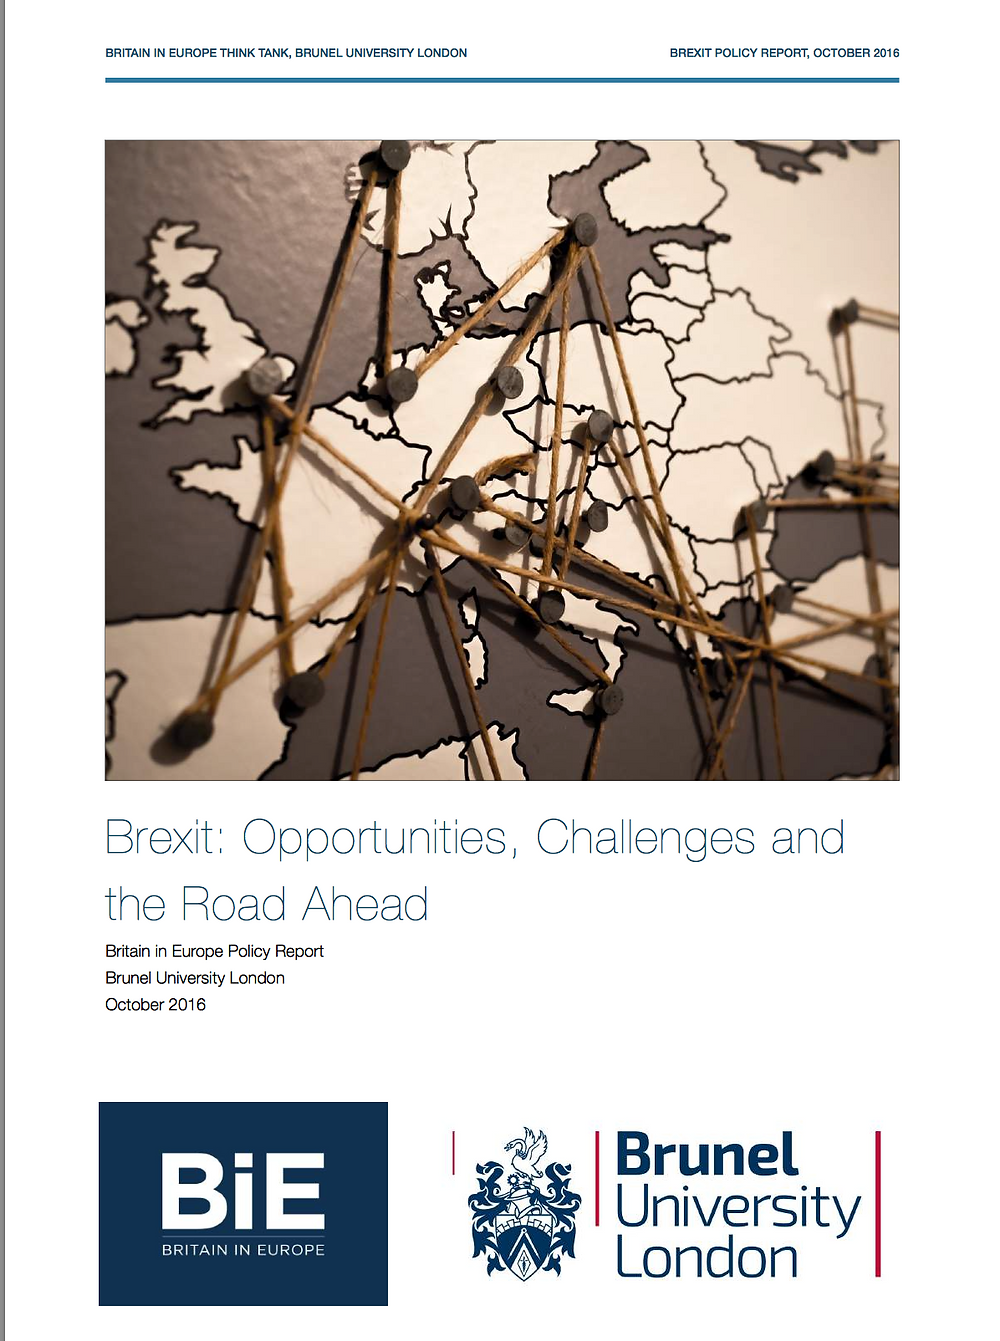 BiE Brexit report (October 2016)